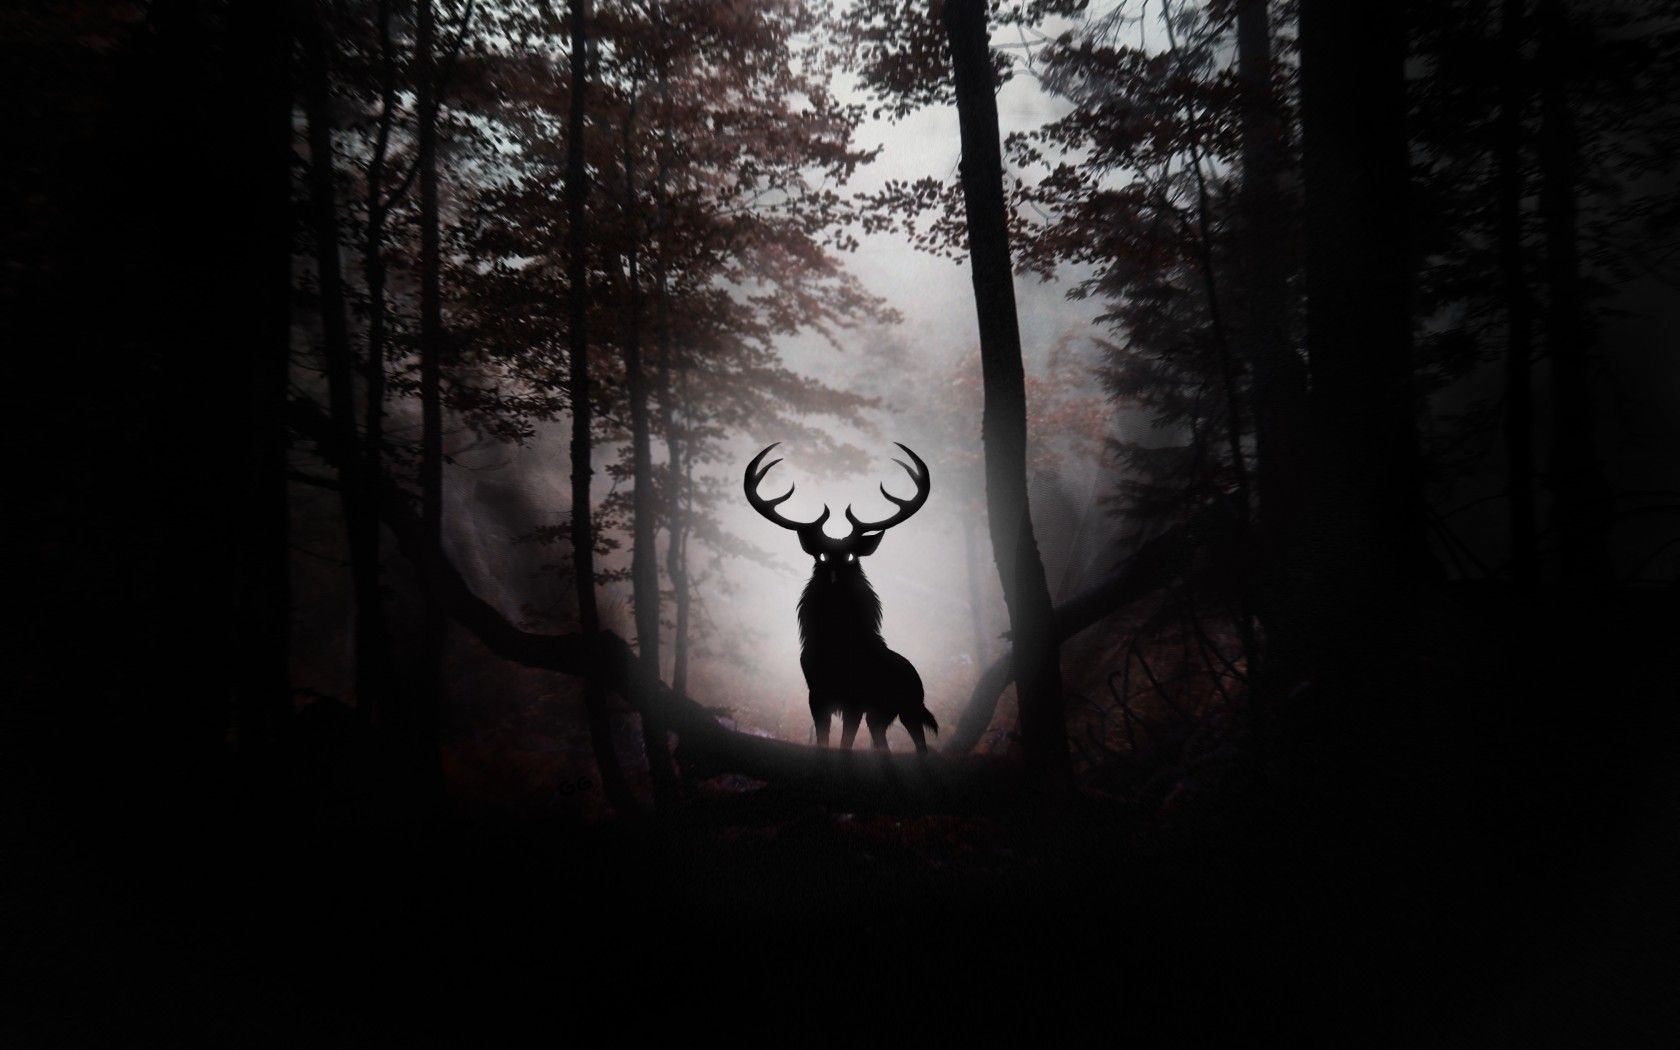 The dark forest photography reveals the skill and